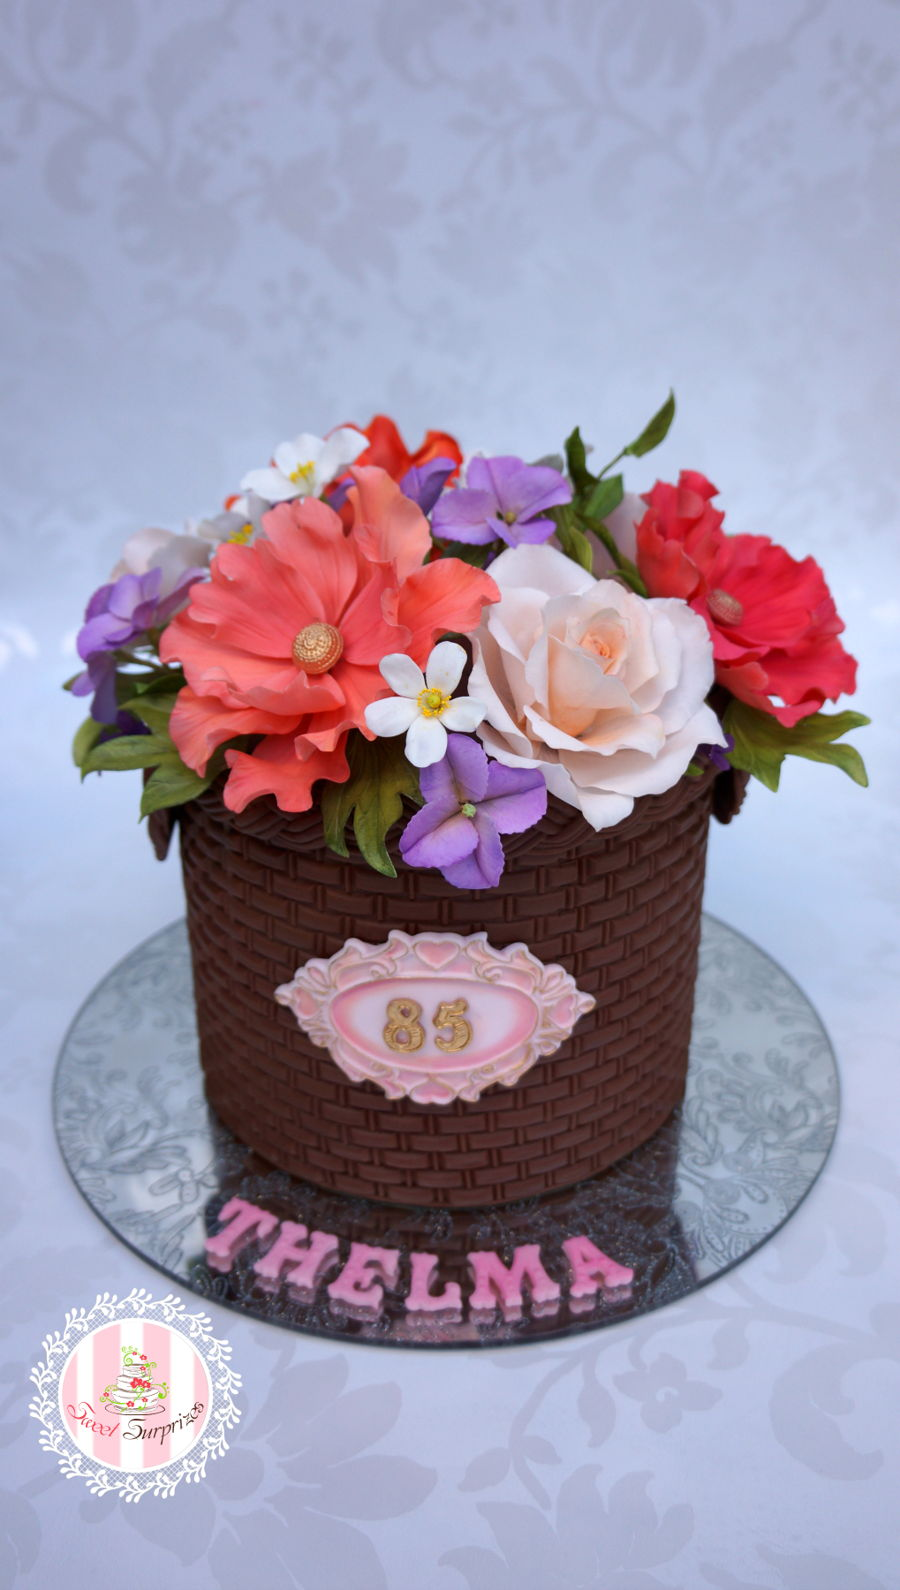 A Basket Of Flowers For Thelma on Cake Central